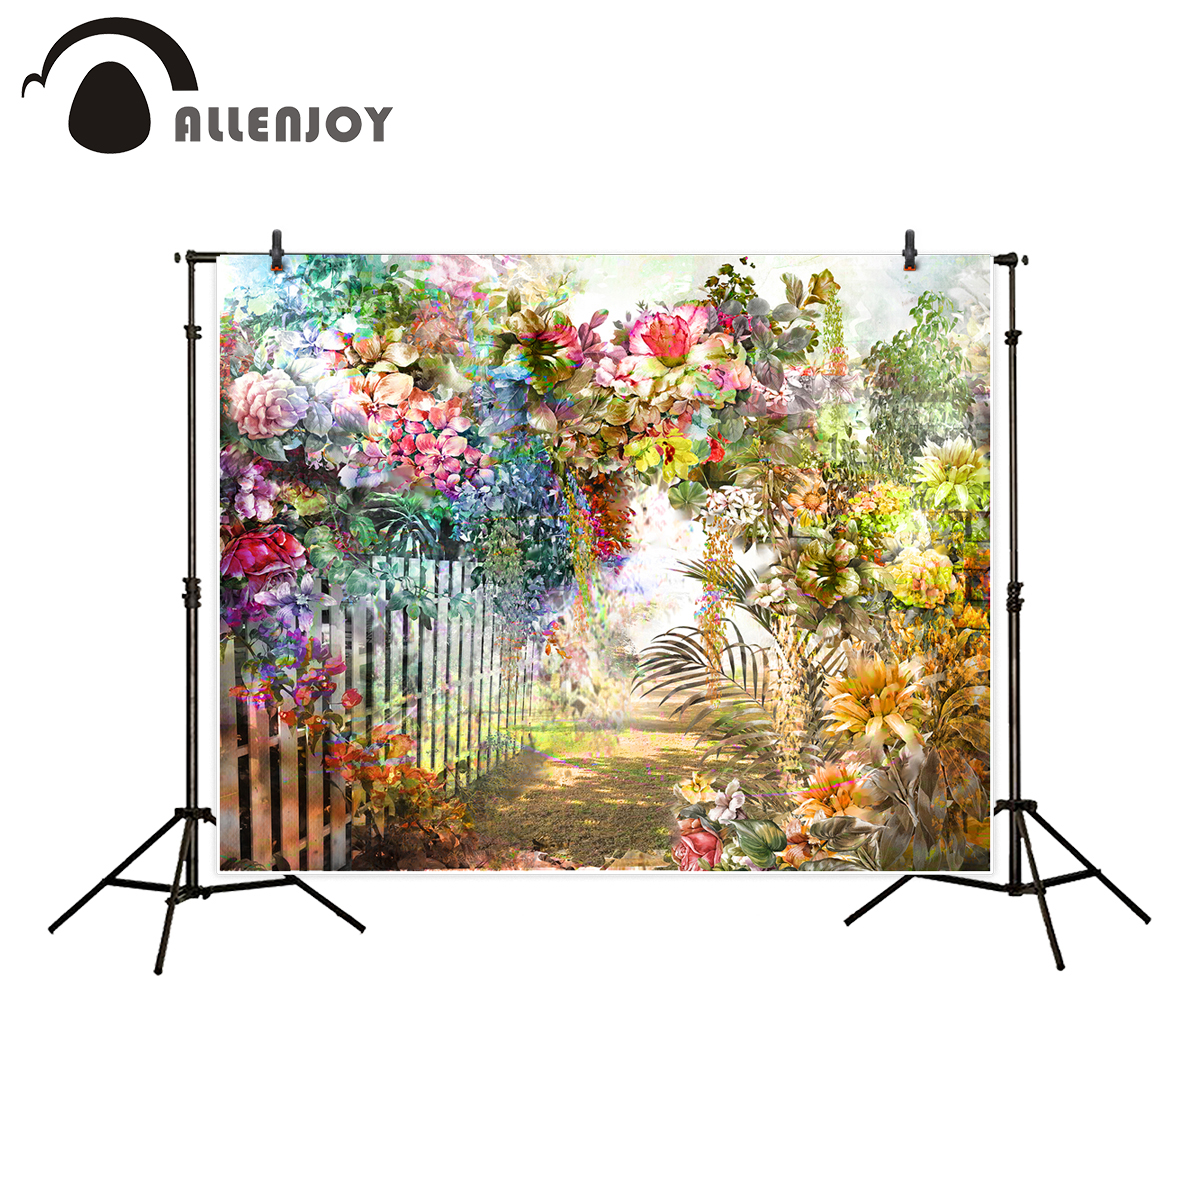 Allenjoy photography backdrop flower garden painting colorful retro background photo studio new photocall photobooth allenjoy photography backdrop library books student child newborn photo studio photocall background original design